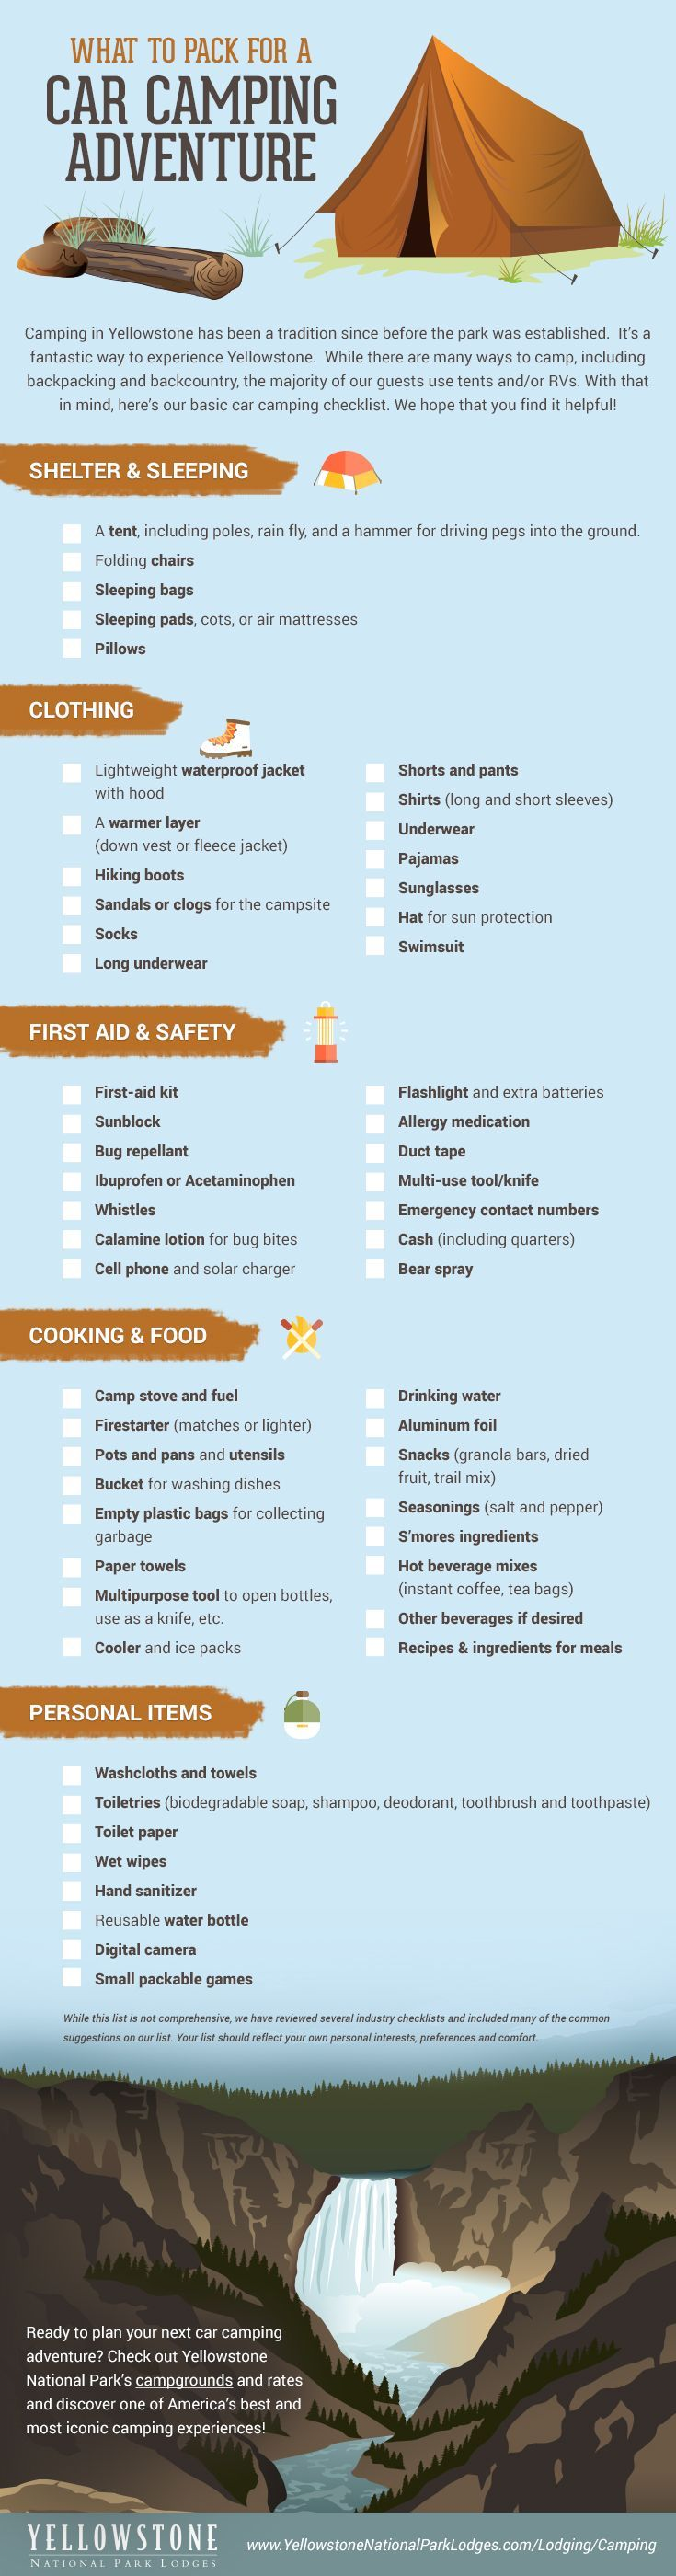 in Yellowstone has been a tradition since before the park was established, and it's a fantastic way to experience Yellowstone! With that in mind, here's our basic car camping checklist!